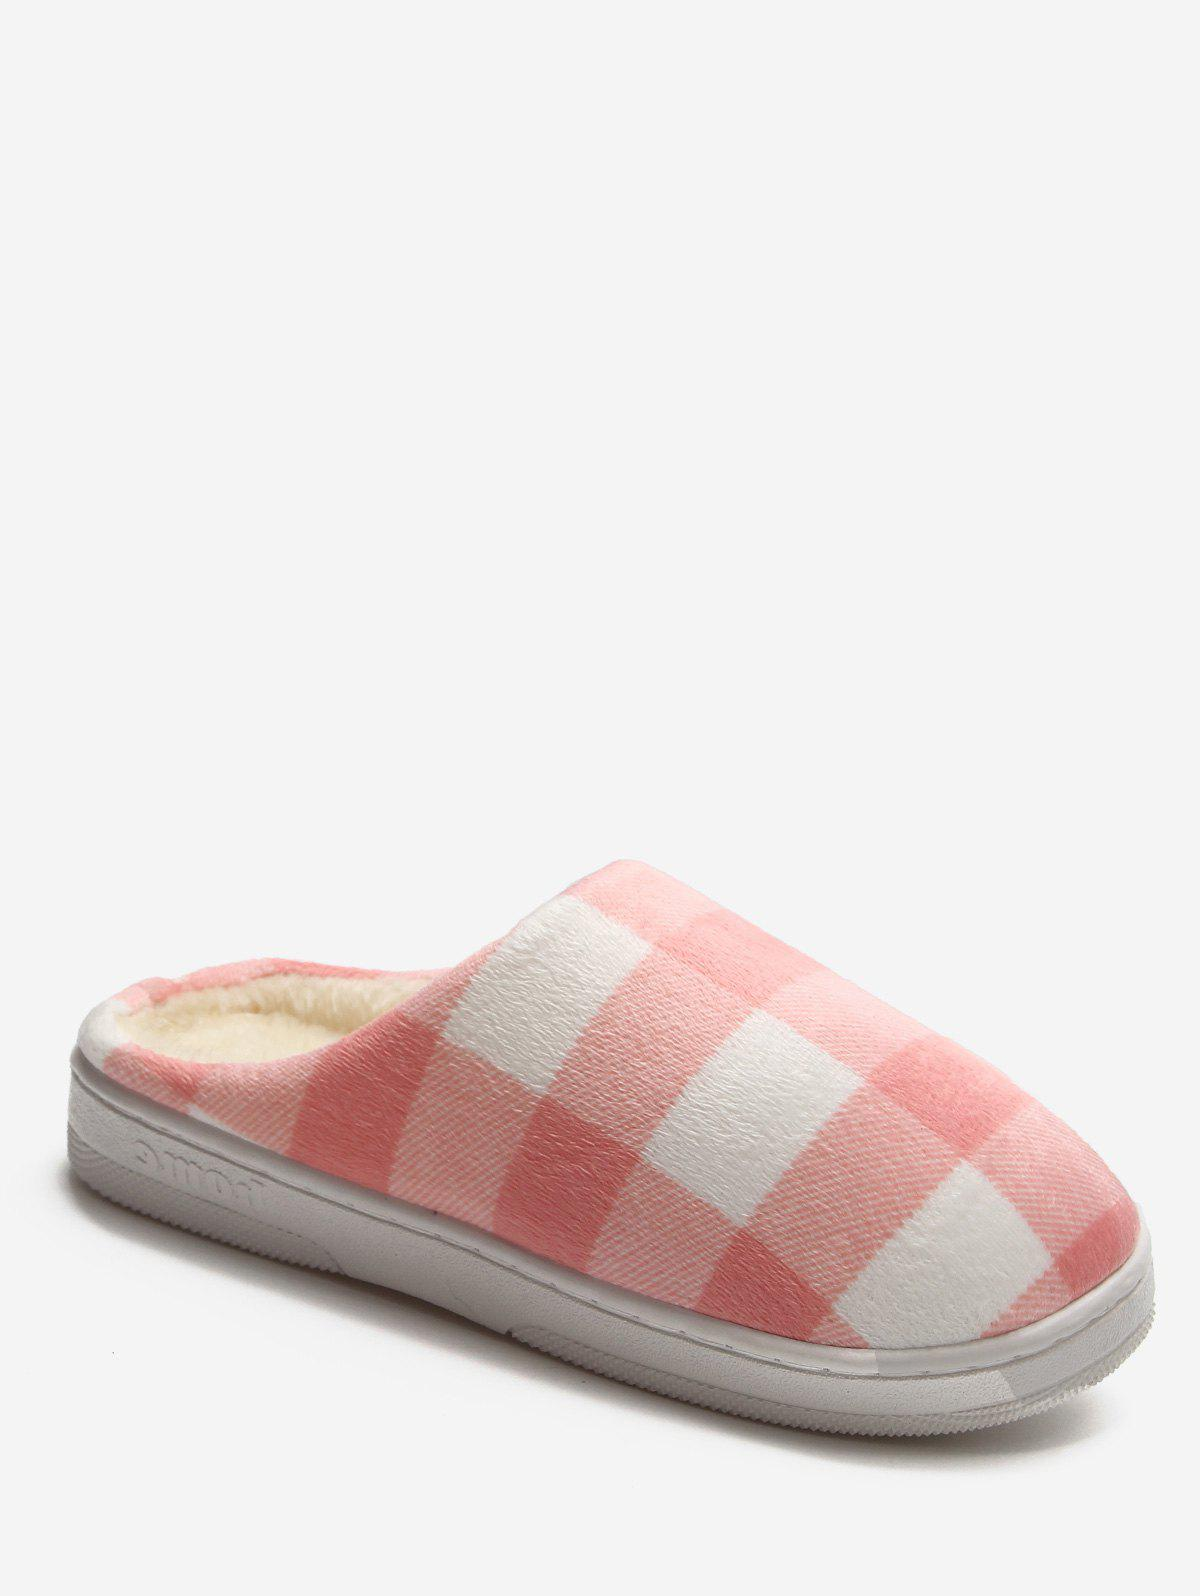 Fancy Plaid Cotton Indoor Warm Slippers